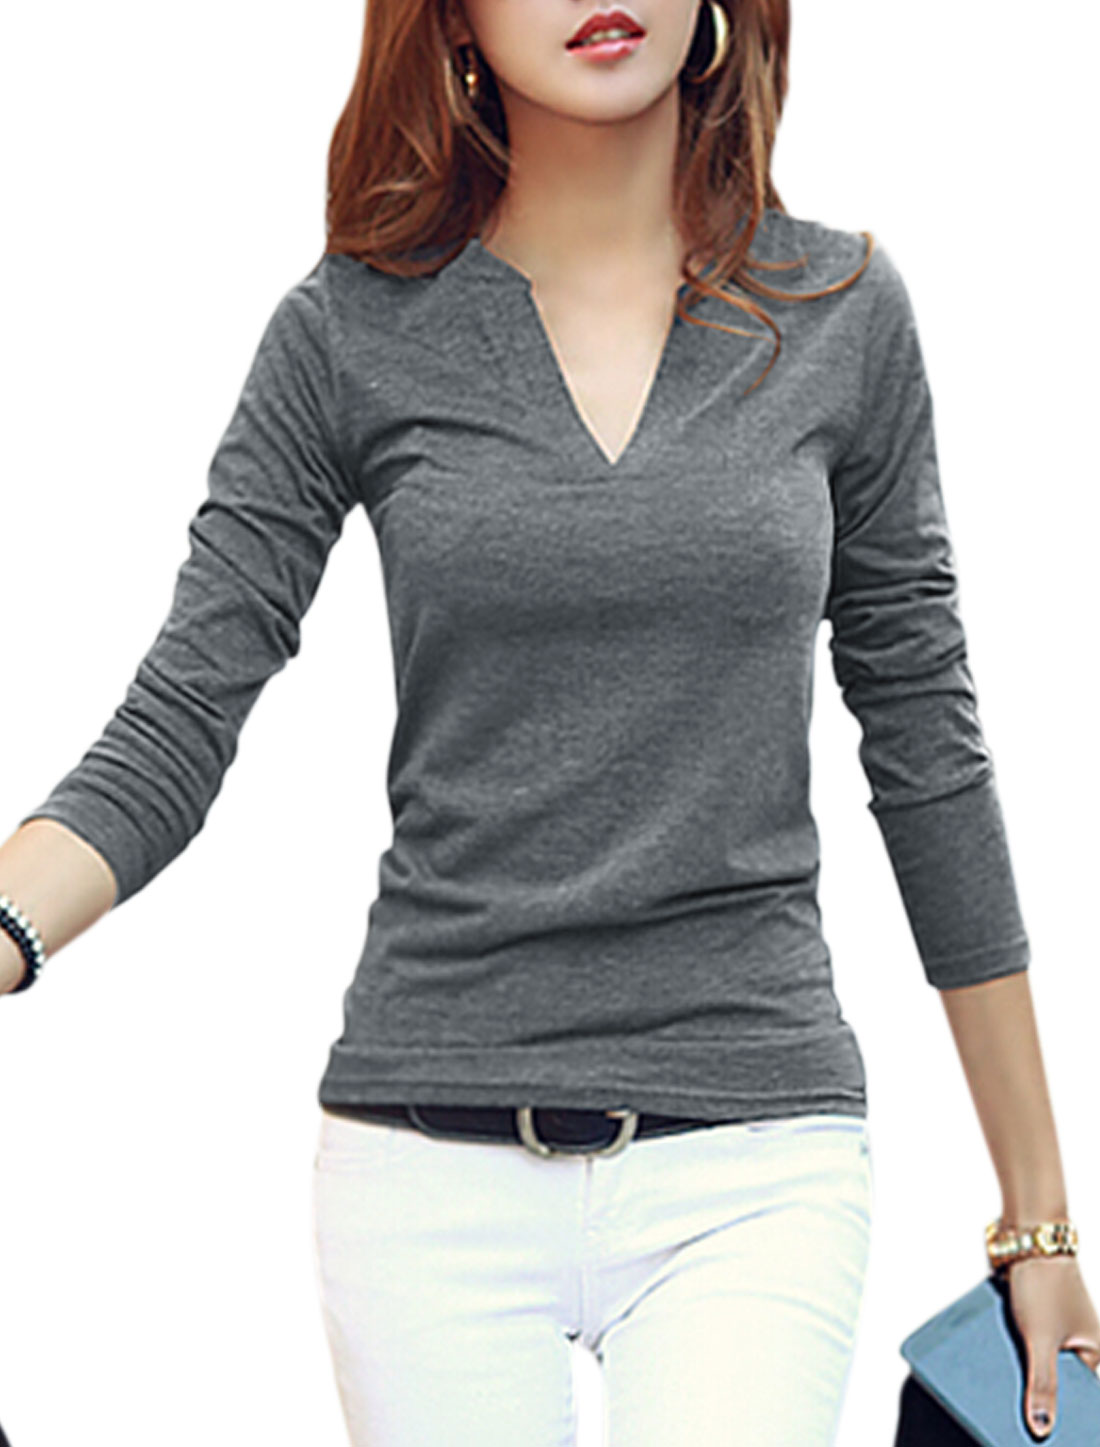 Ladies Gray Pullover Stretchy Slim Fit Split Neck Leisure Top S